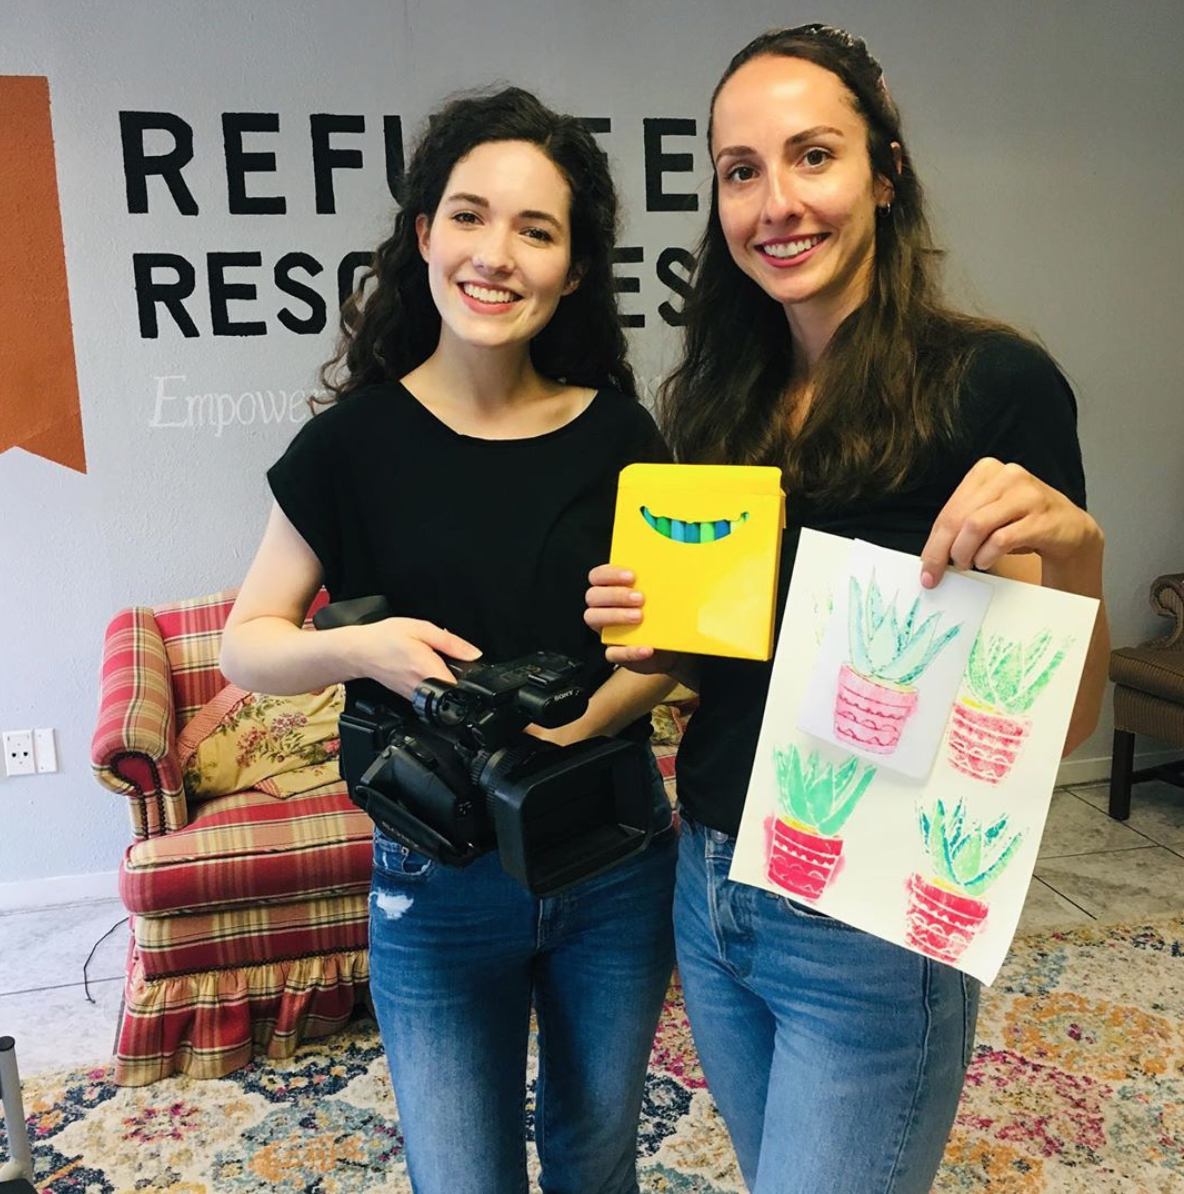 Me, Left, filming A piece about literacy. - Pictured with Jordan, an art teacher with Refugee Resources. Photo courtesy of Alysa Marx. Click the photo to watch the finished product.